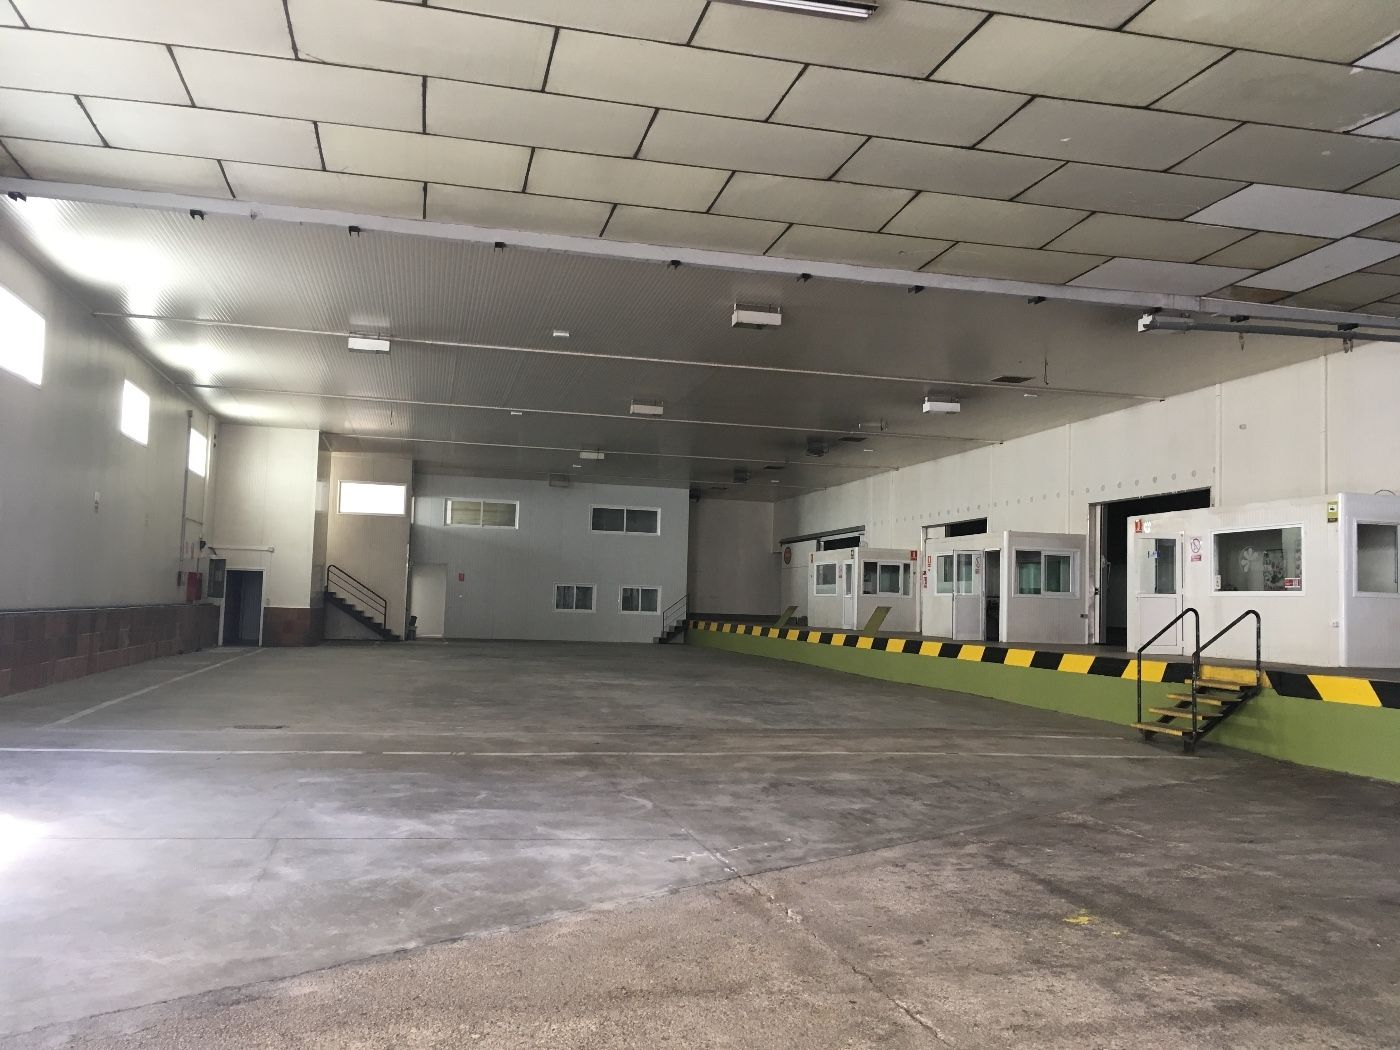 Rent Industrial building in Carrer montblanc, 38. Nave industrial